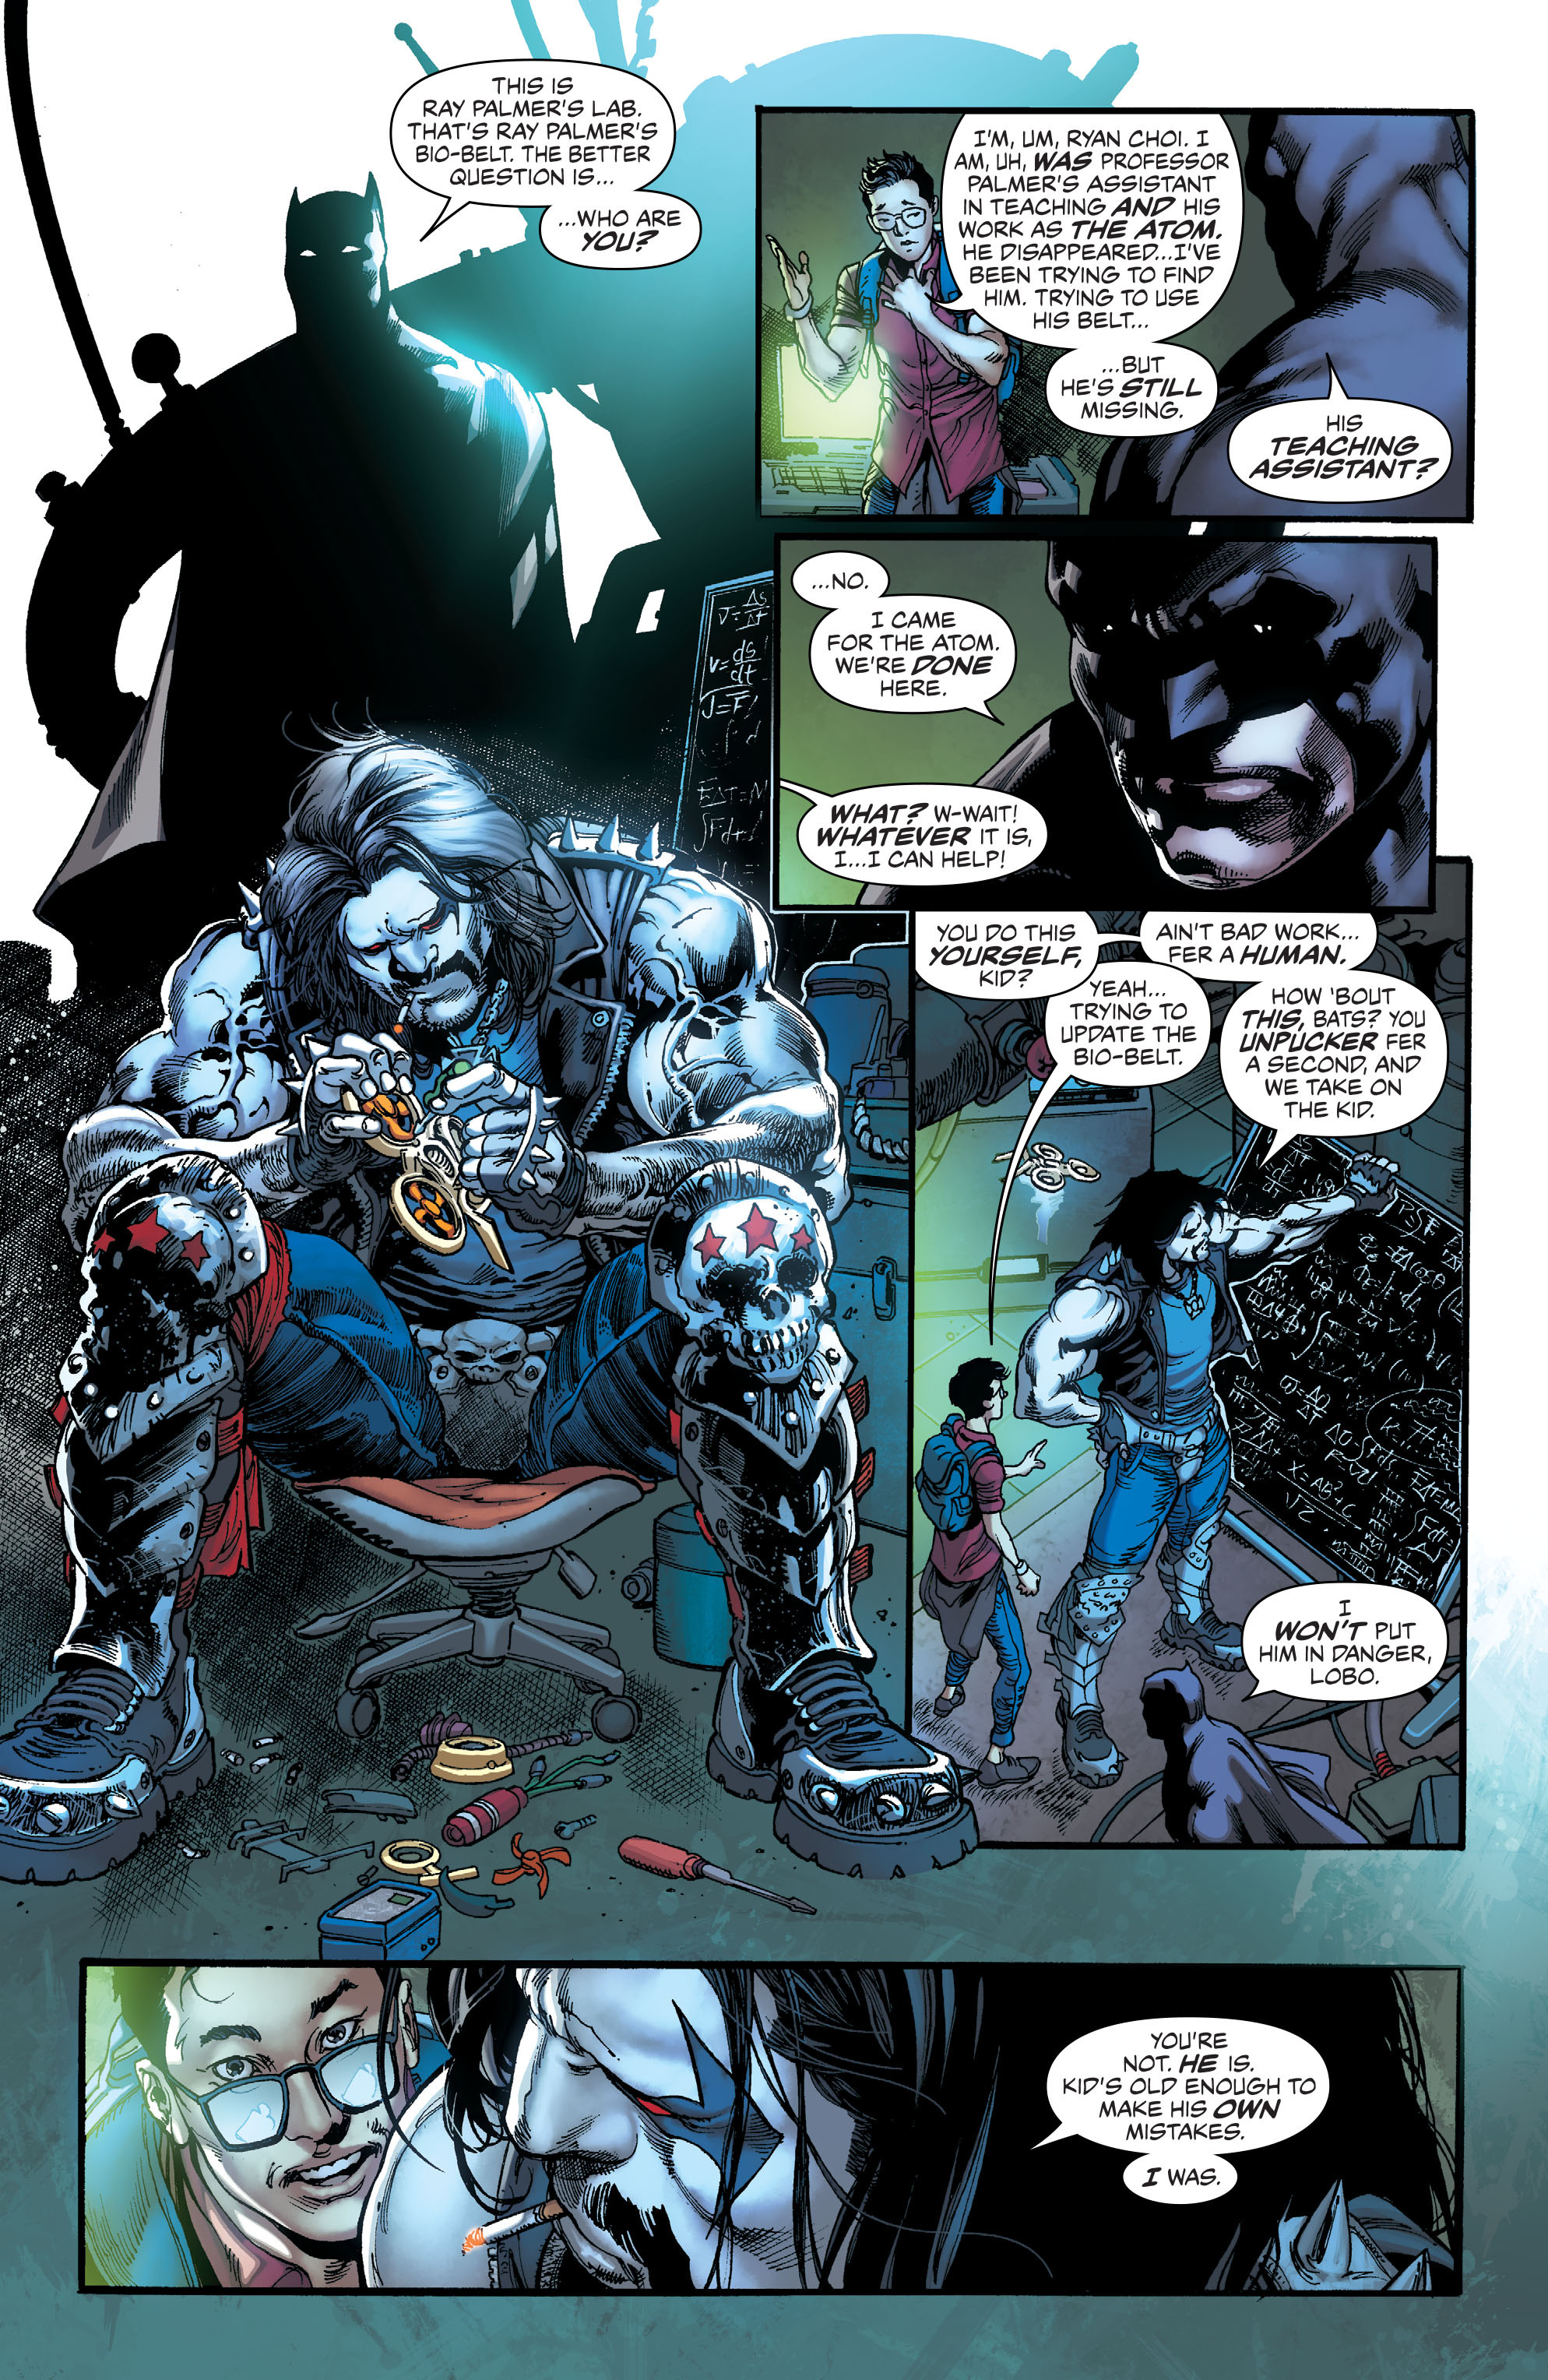 The Atom recruits the Ray and it looks like the Atom still needs a ... Black Canary Birds Of Prey